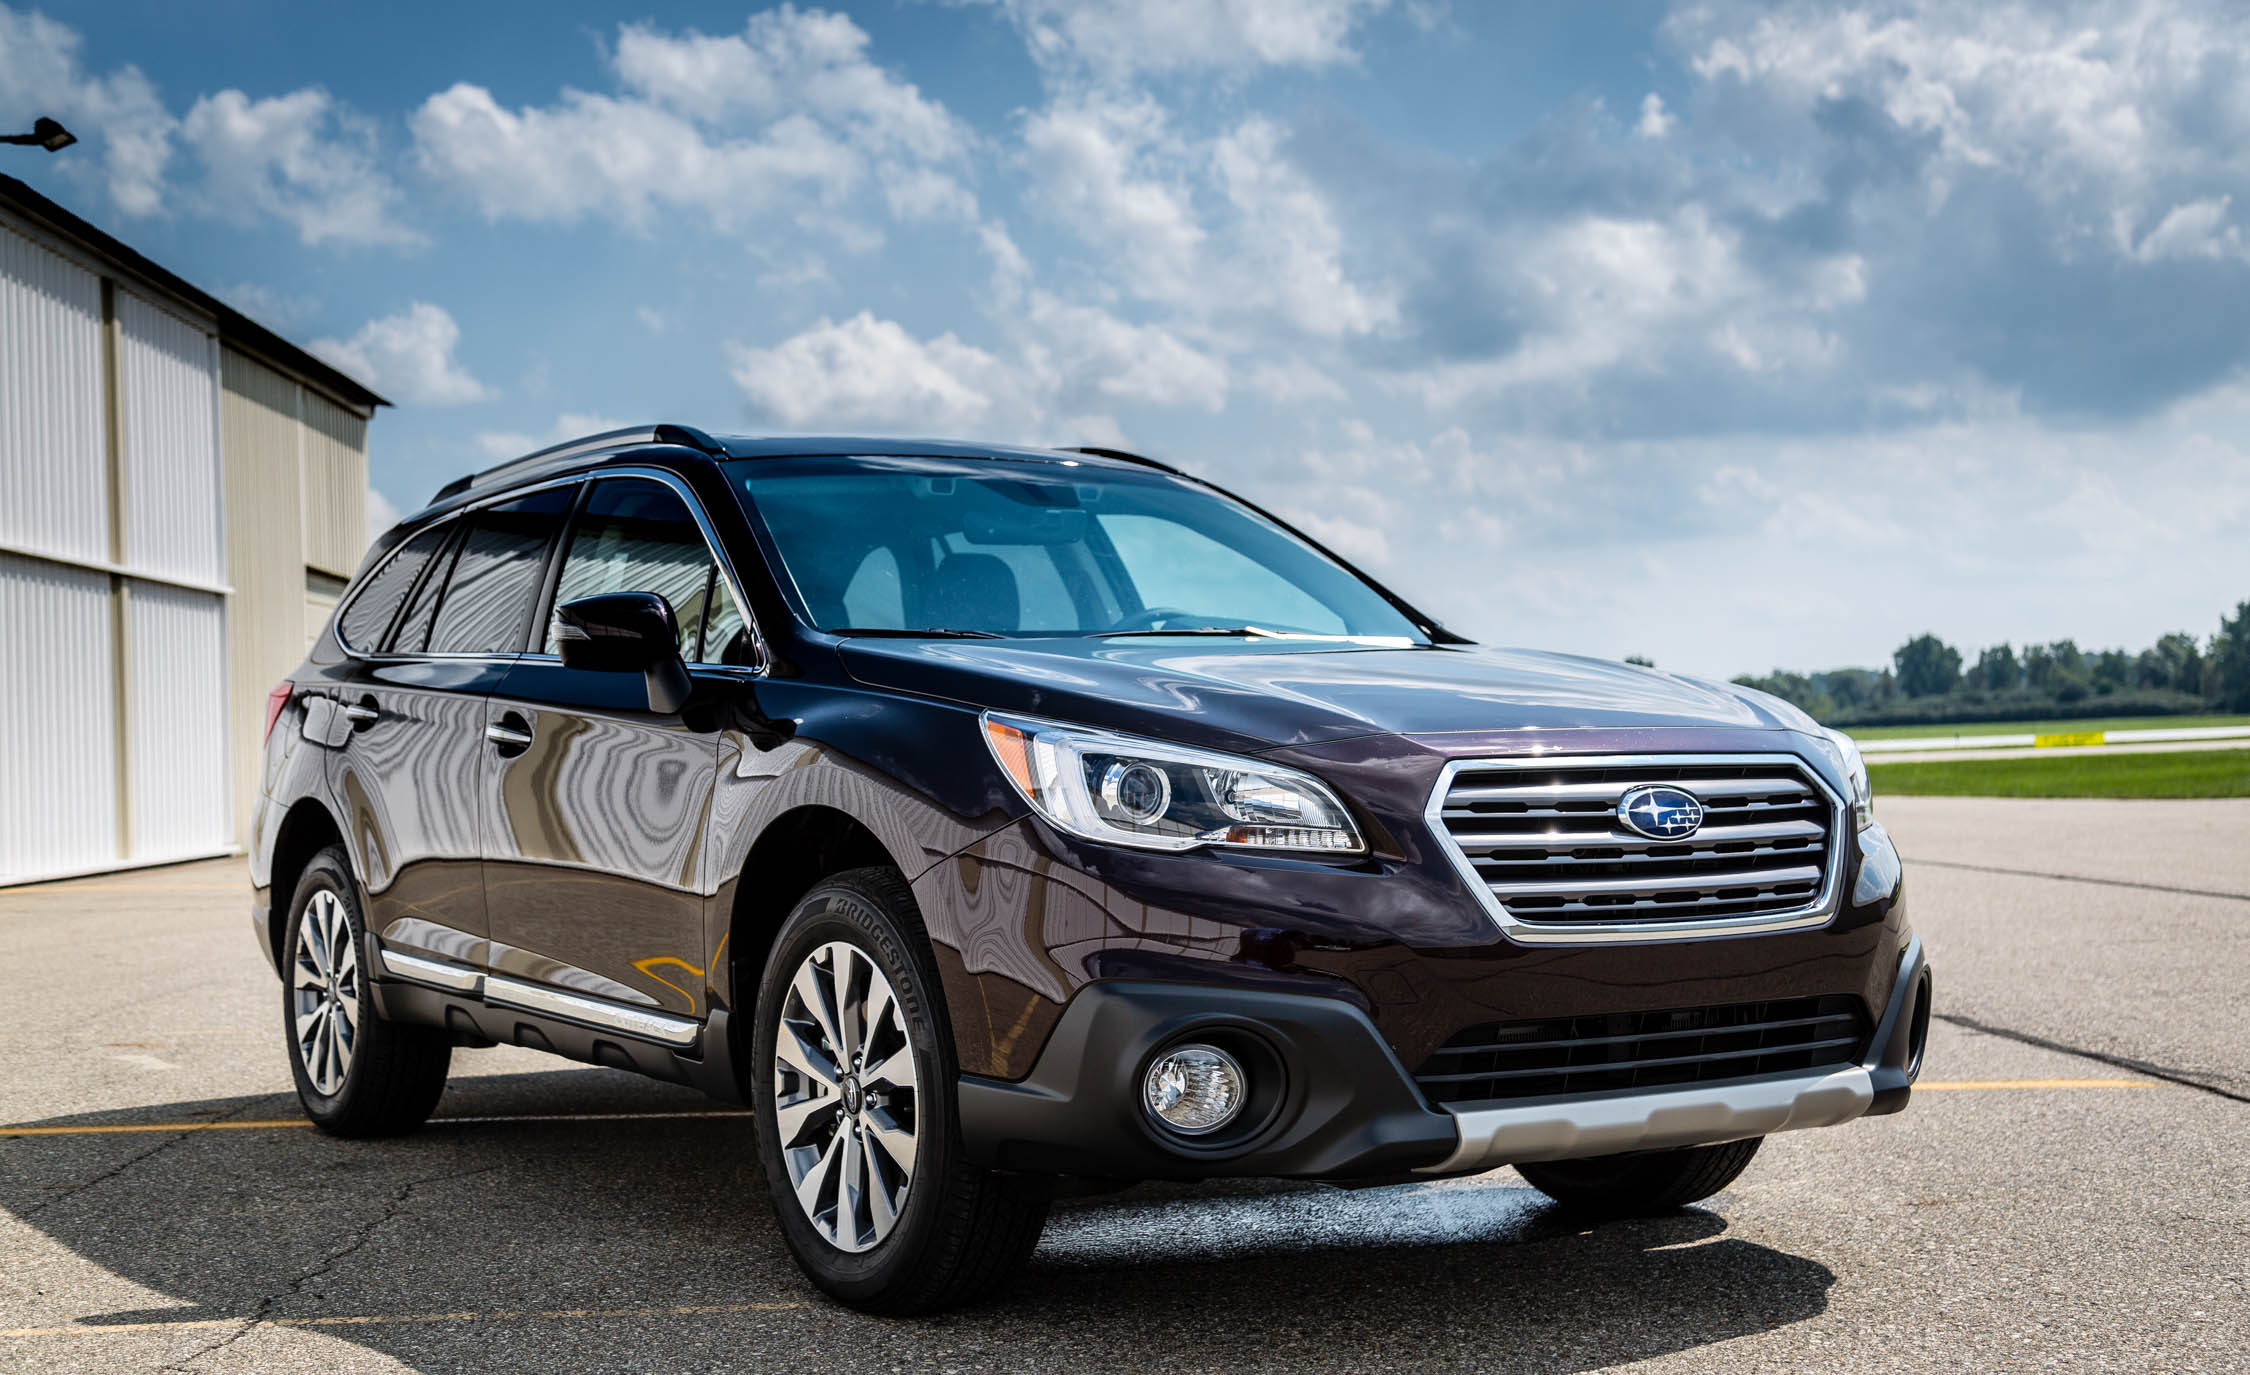 2017 Subaru Outback (View 1 of 13)